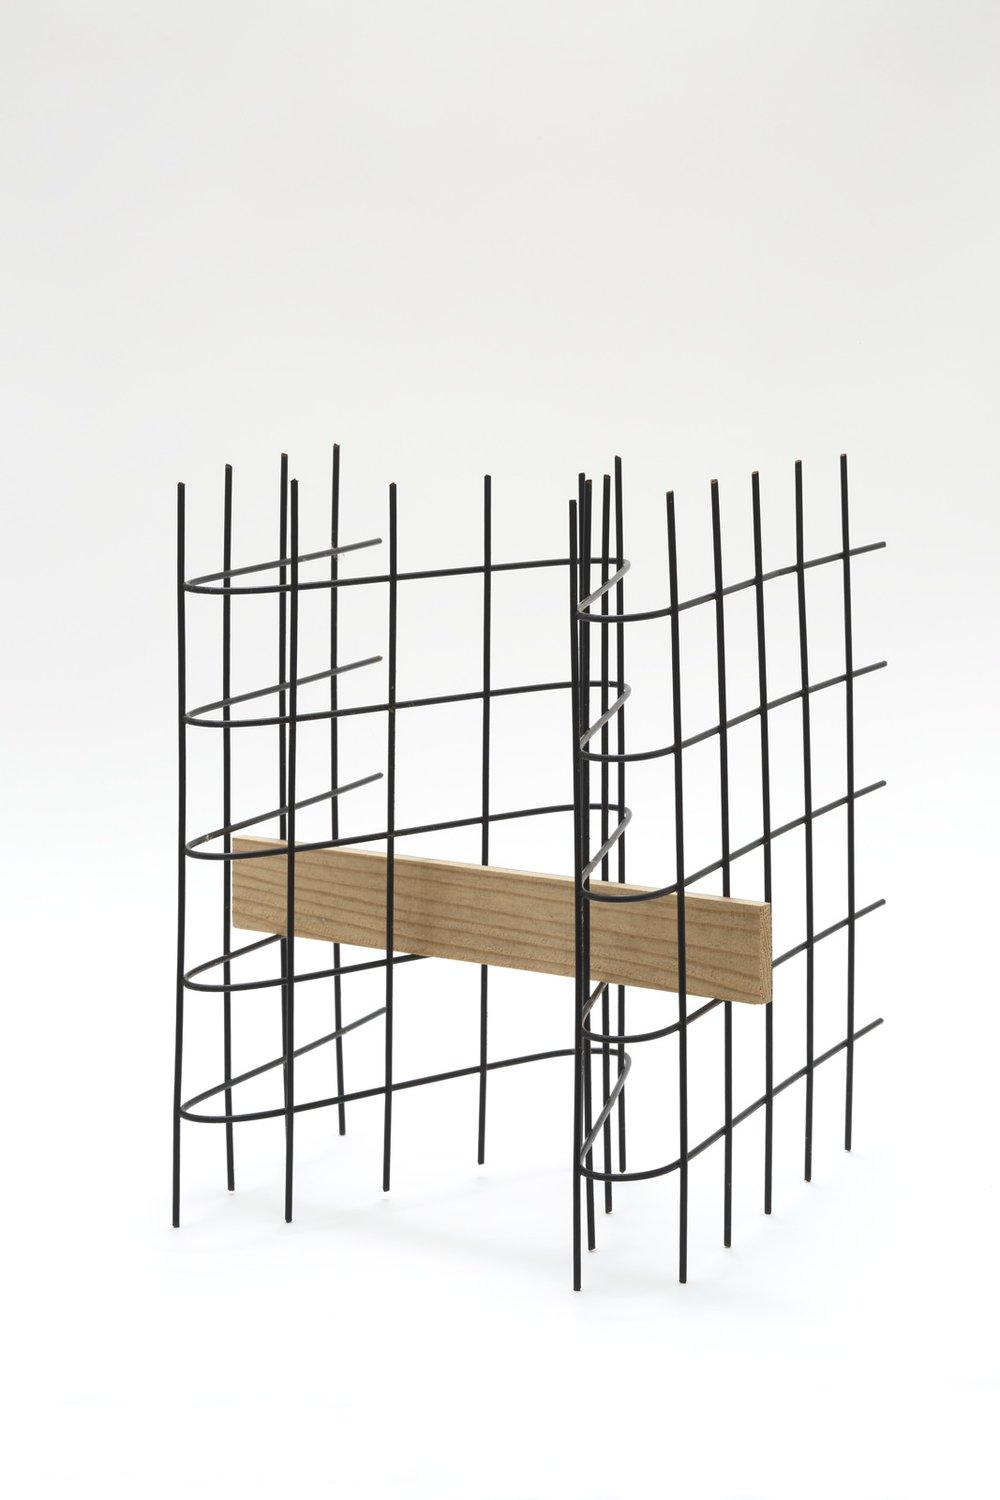 Formation of Multiple Existences , 2006 Plastic-coated wire mesh, wood 11 1/4 x 9 13/16 x 11 inches  28.5 x 24.9 x 28 centimeters